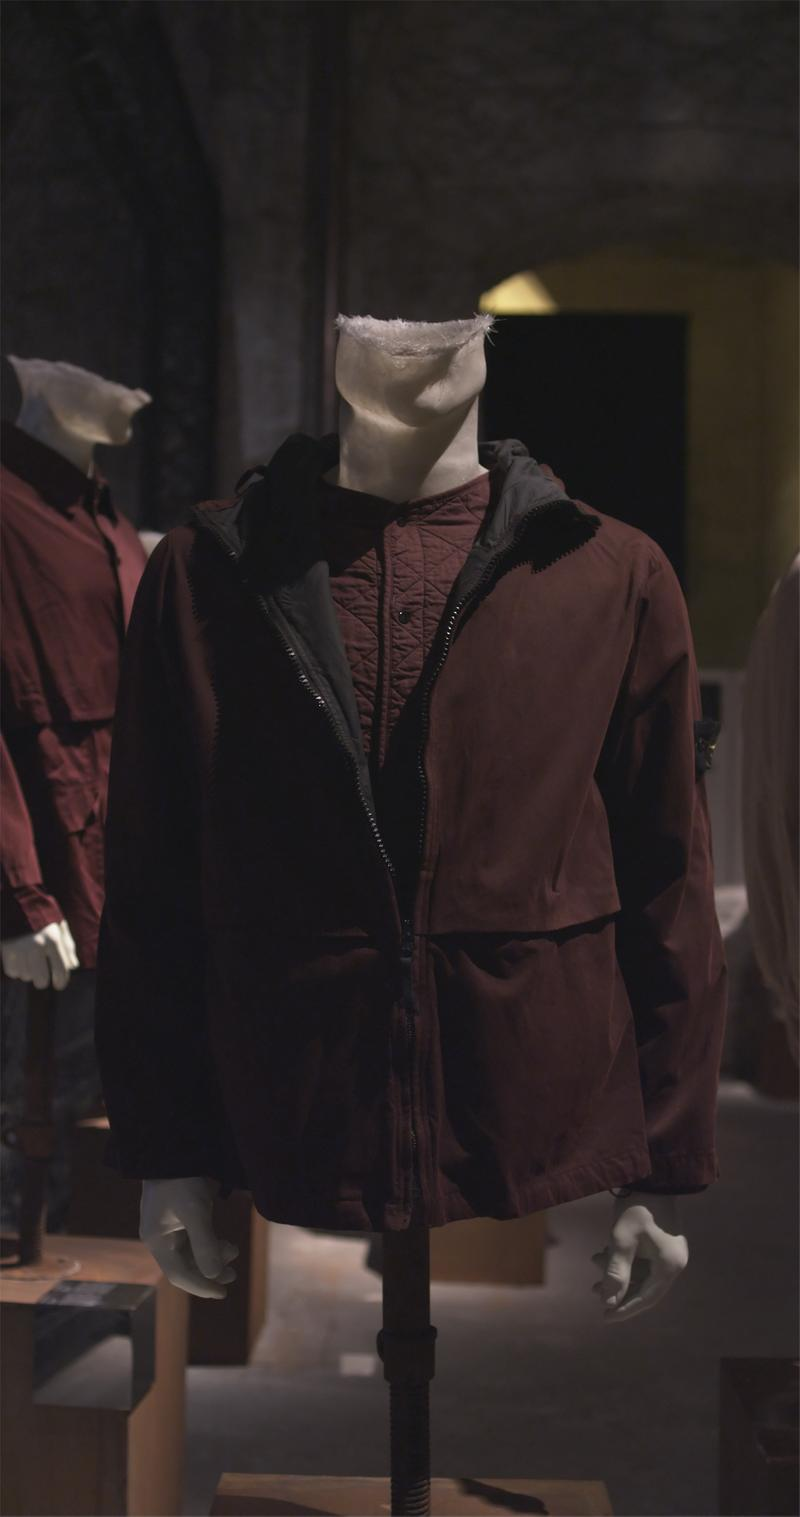 Dark maroon zippered jacket over maroon quilted buttoned shirt displayed on mannequin bust